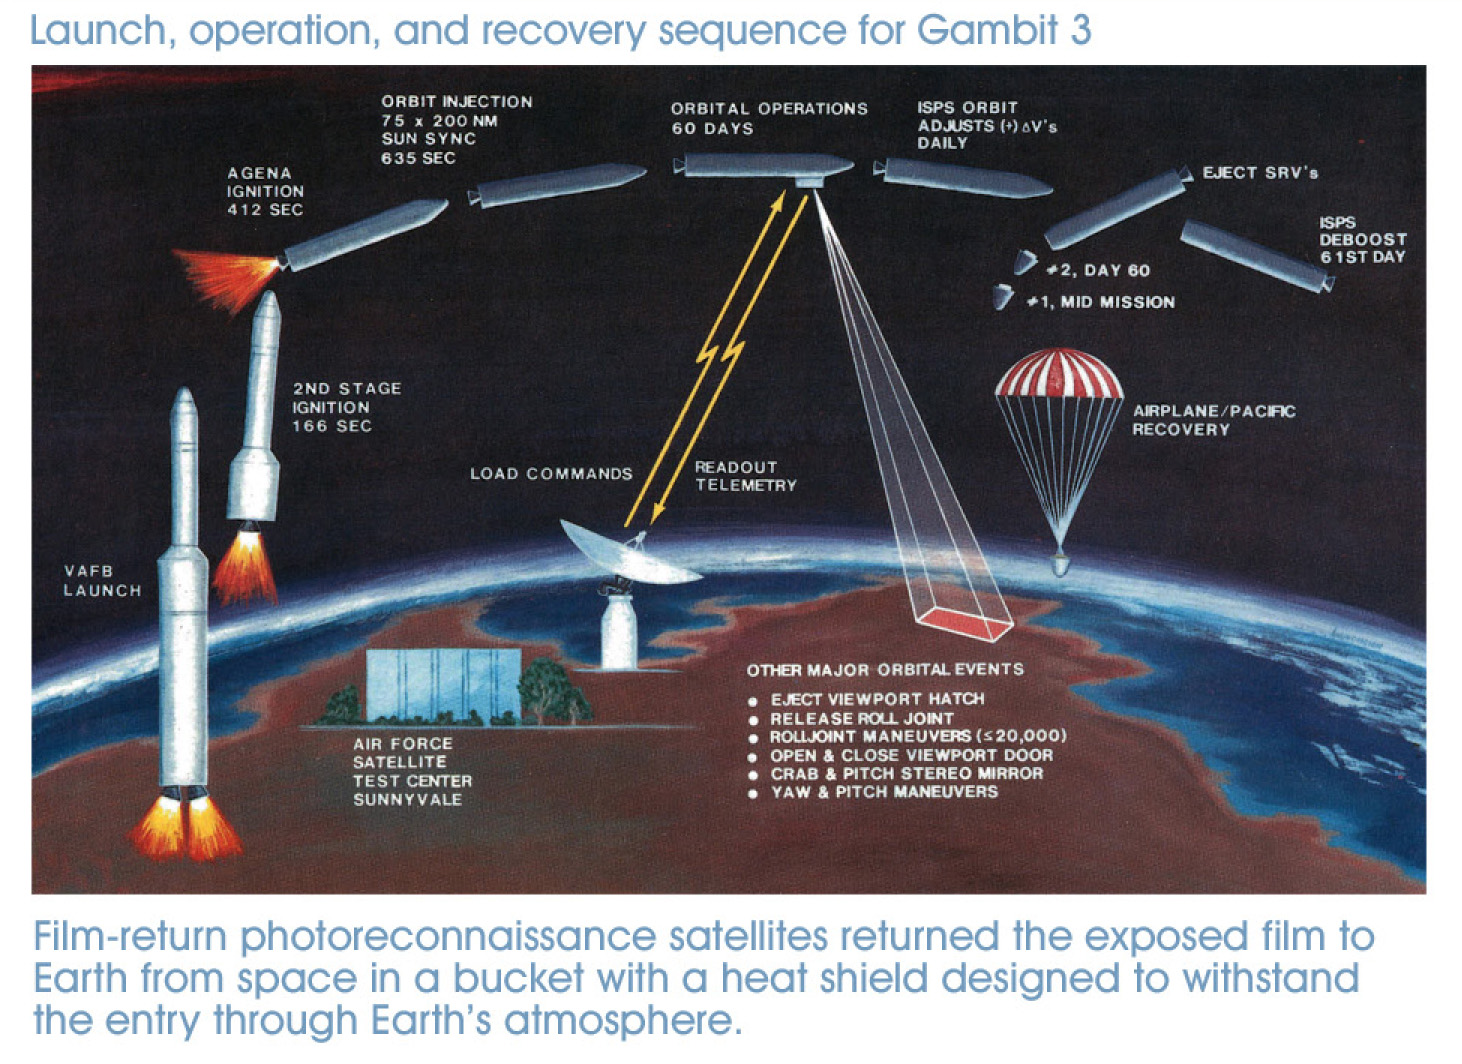 GAMBIT 3 Spy Satellite Flight Profile